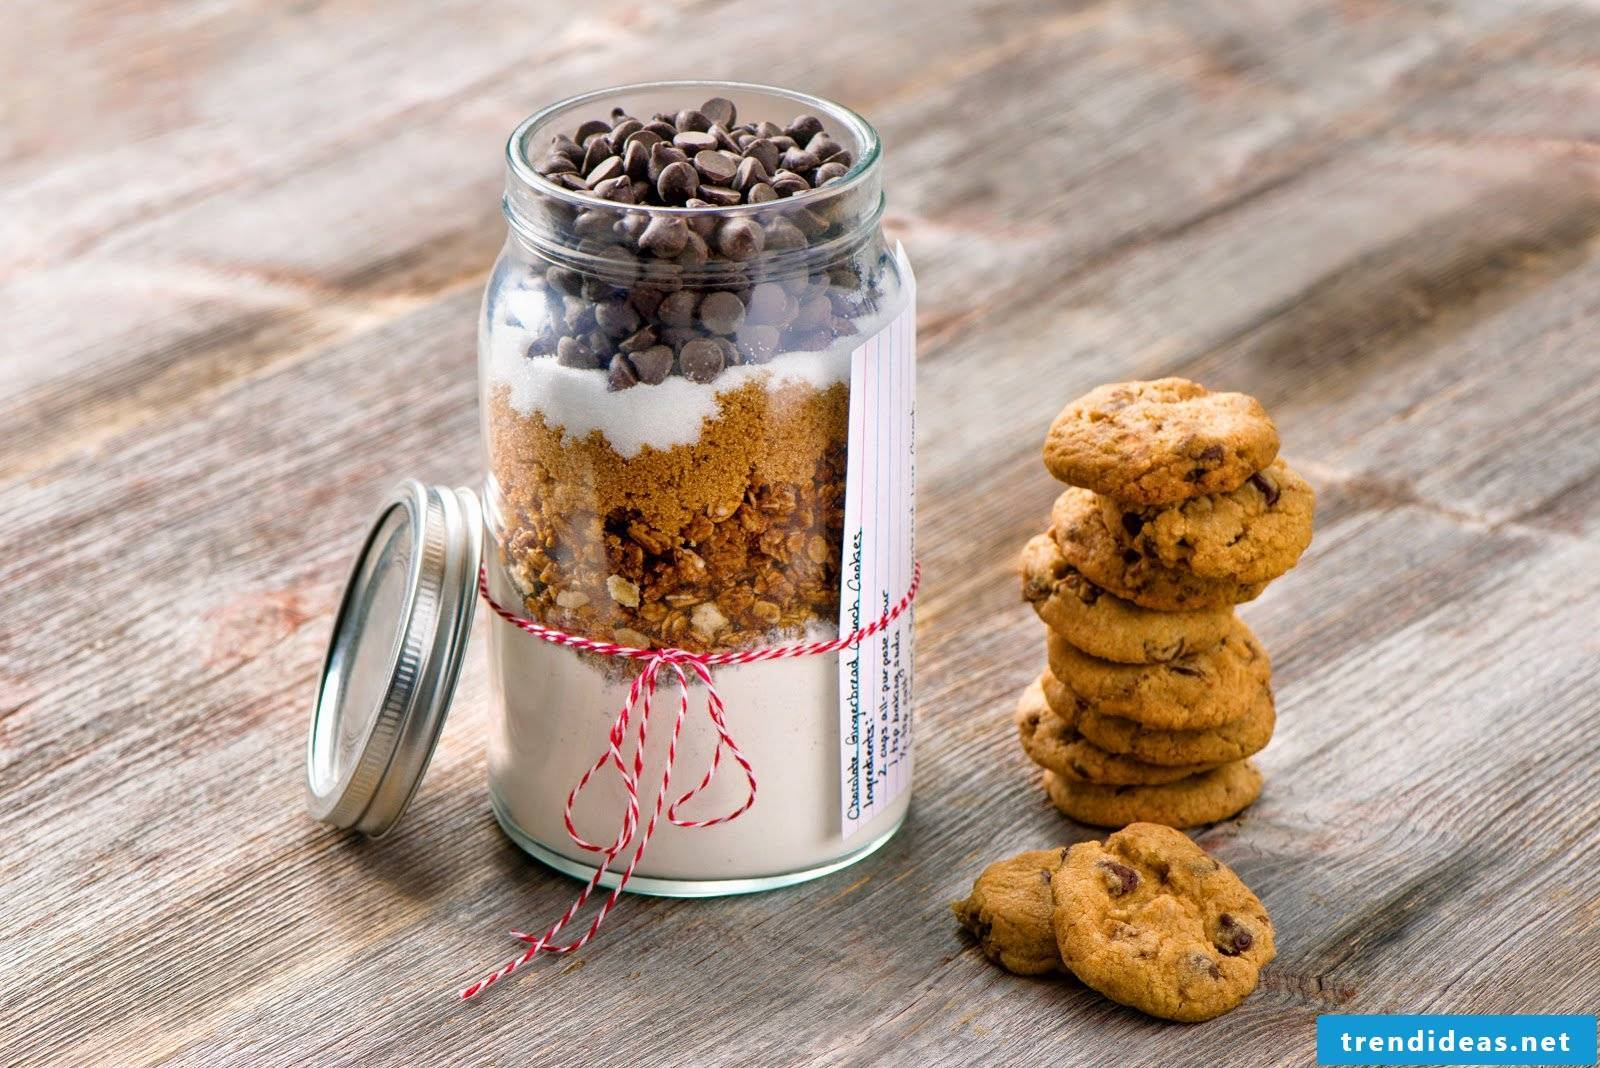 Make baking mix in the glass itself